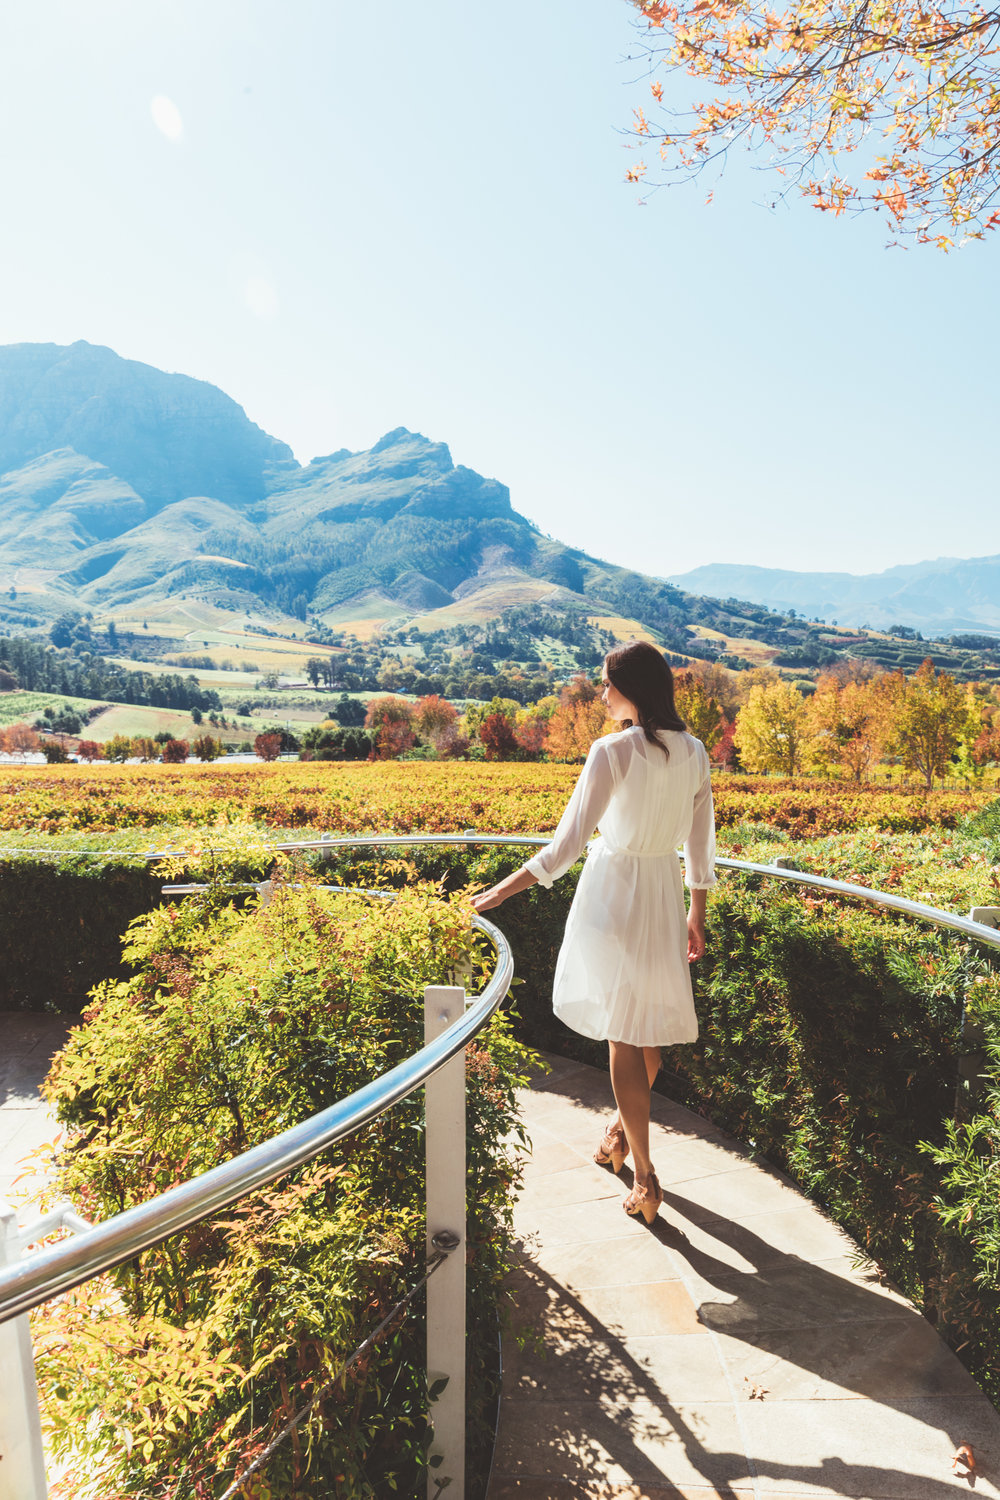 A beautiful girl dressed in a white dress looks out over the magnificent mountain views from the Delaire Graff Restaurant